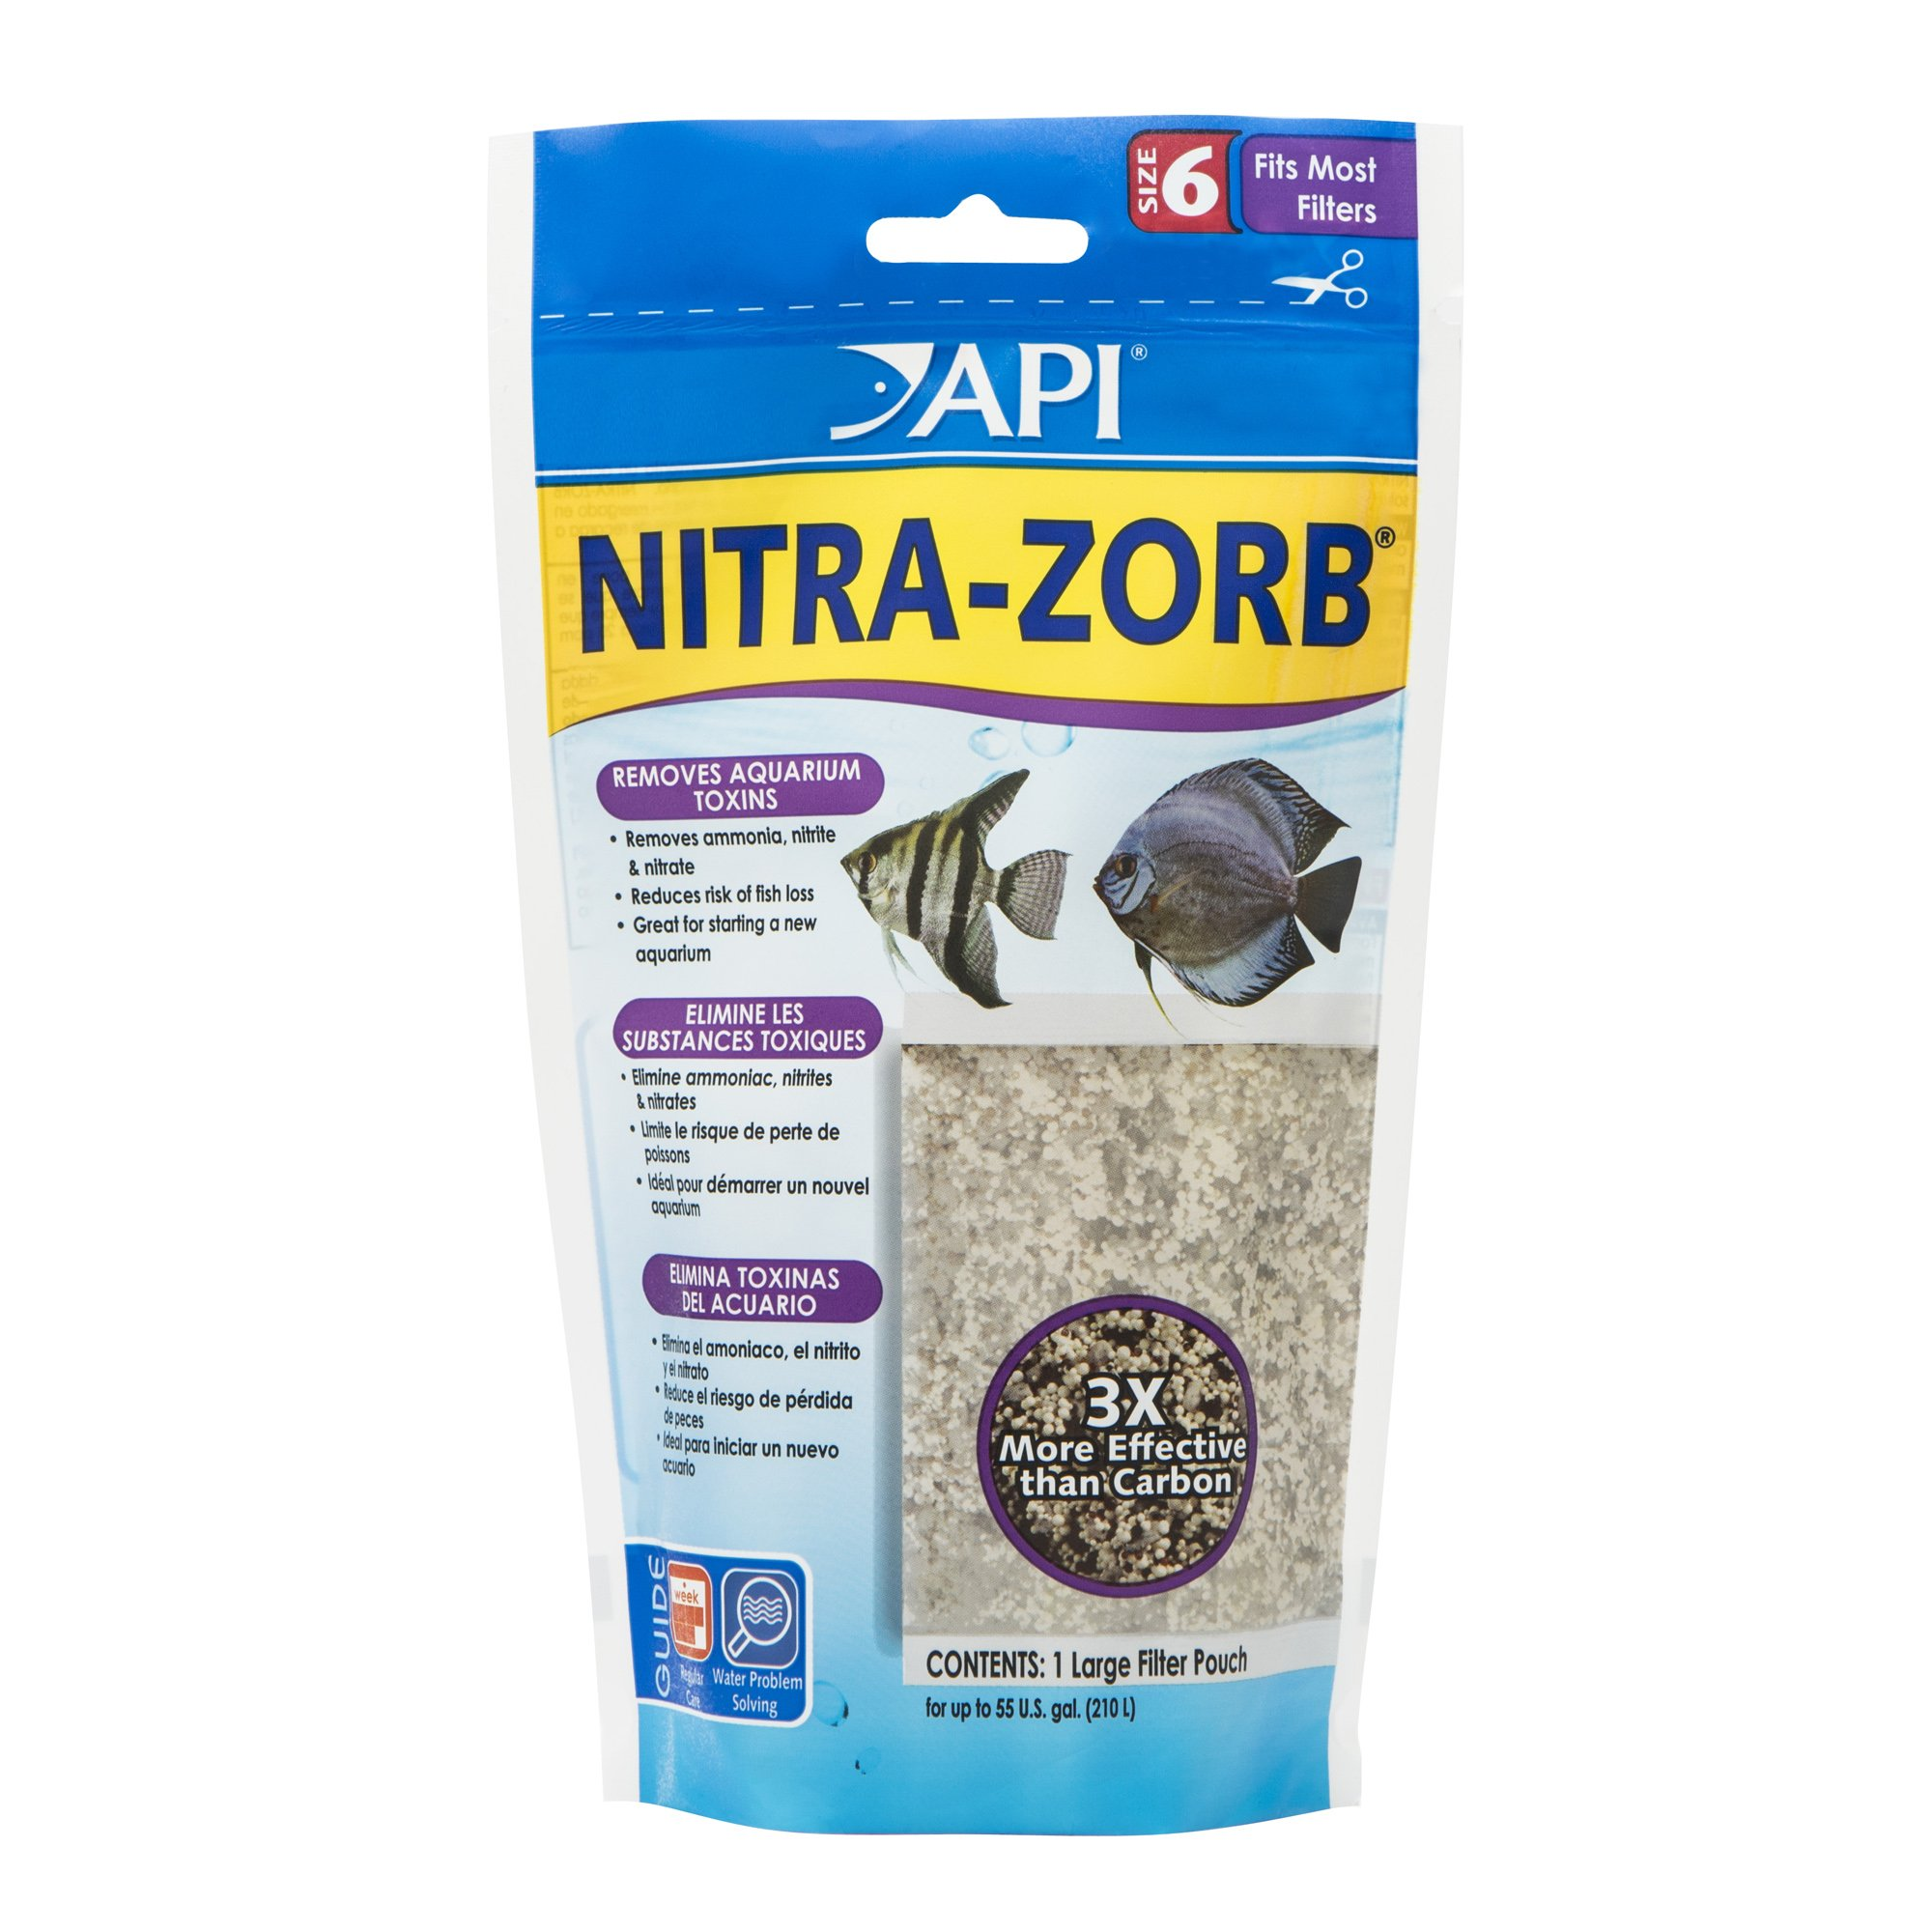 API NITRA-ZORB SIZE 6 Aquarium Canister Filter Filtration Pouch 1-Count Bag by API